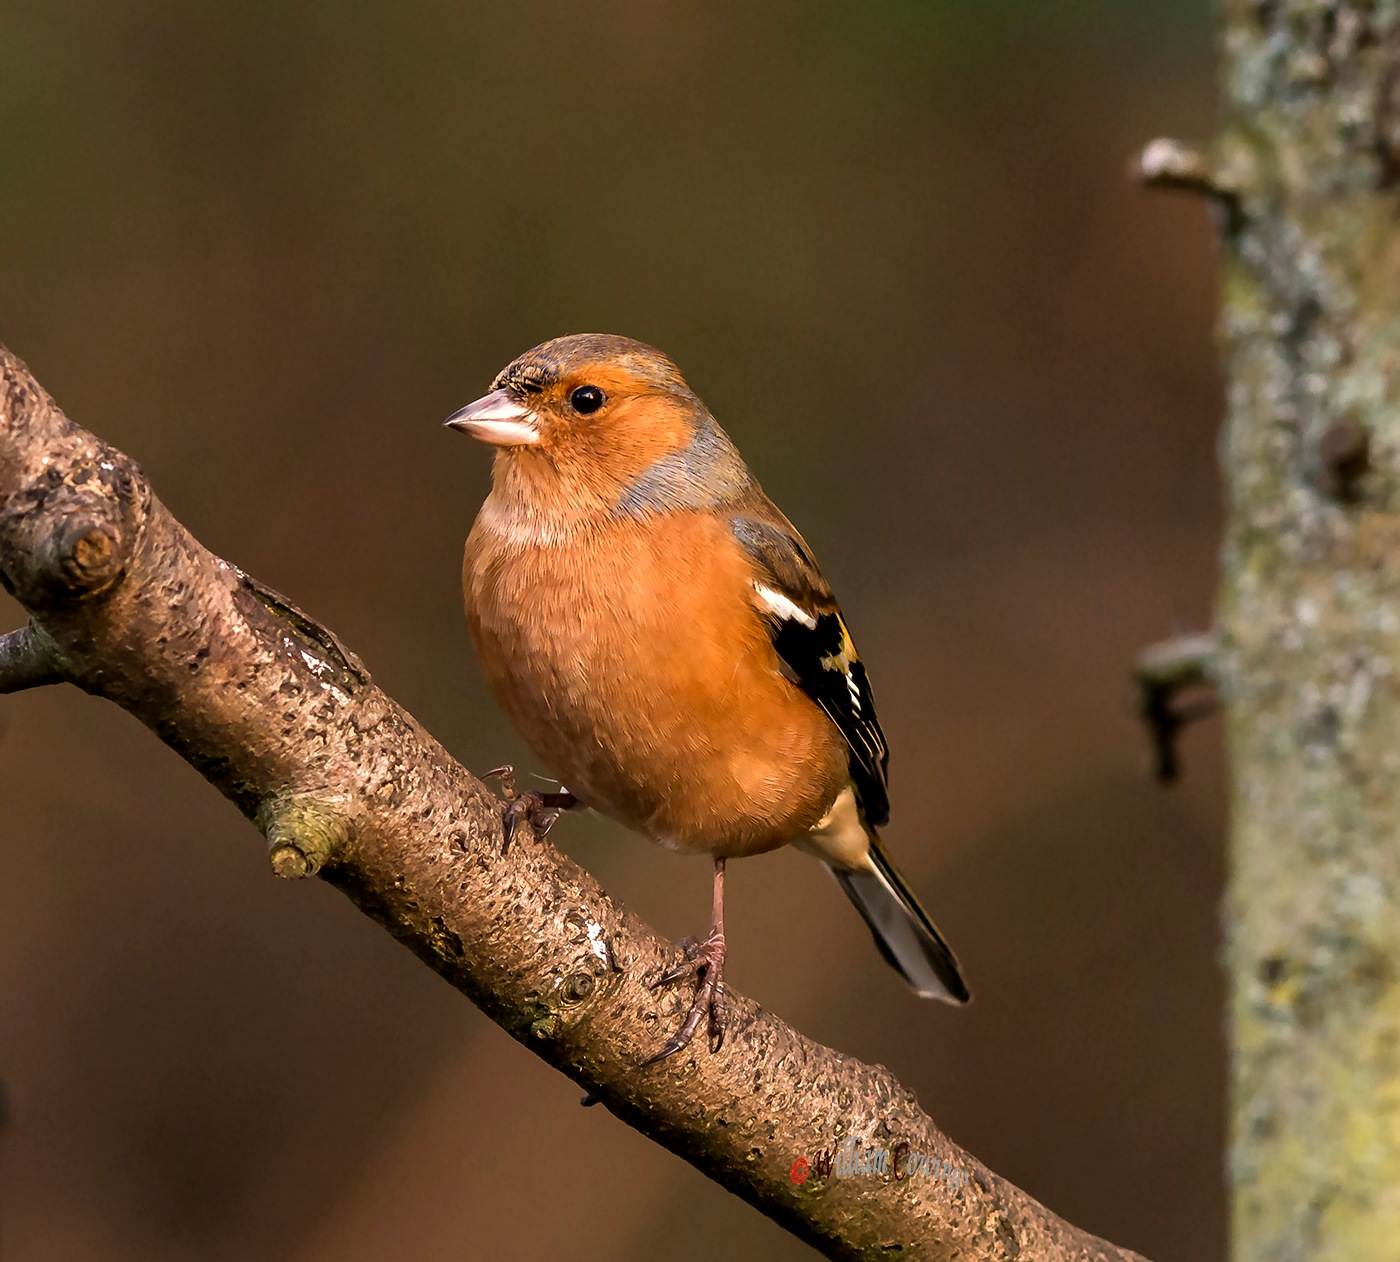 Chaffinch by williamcowings